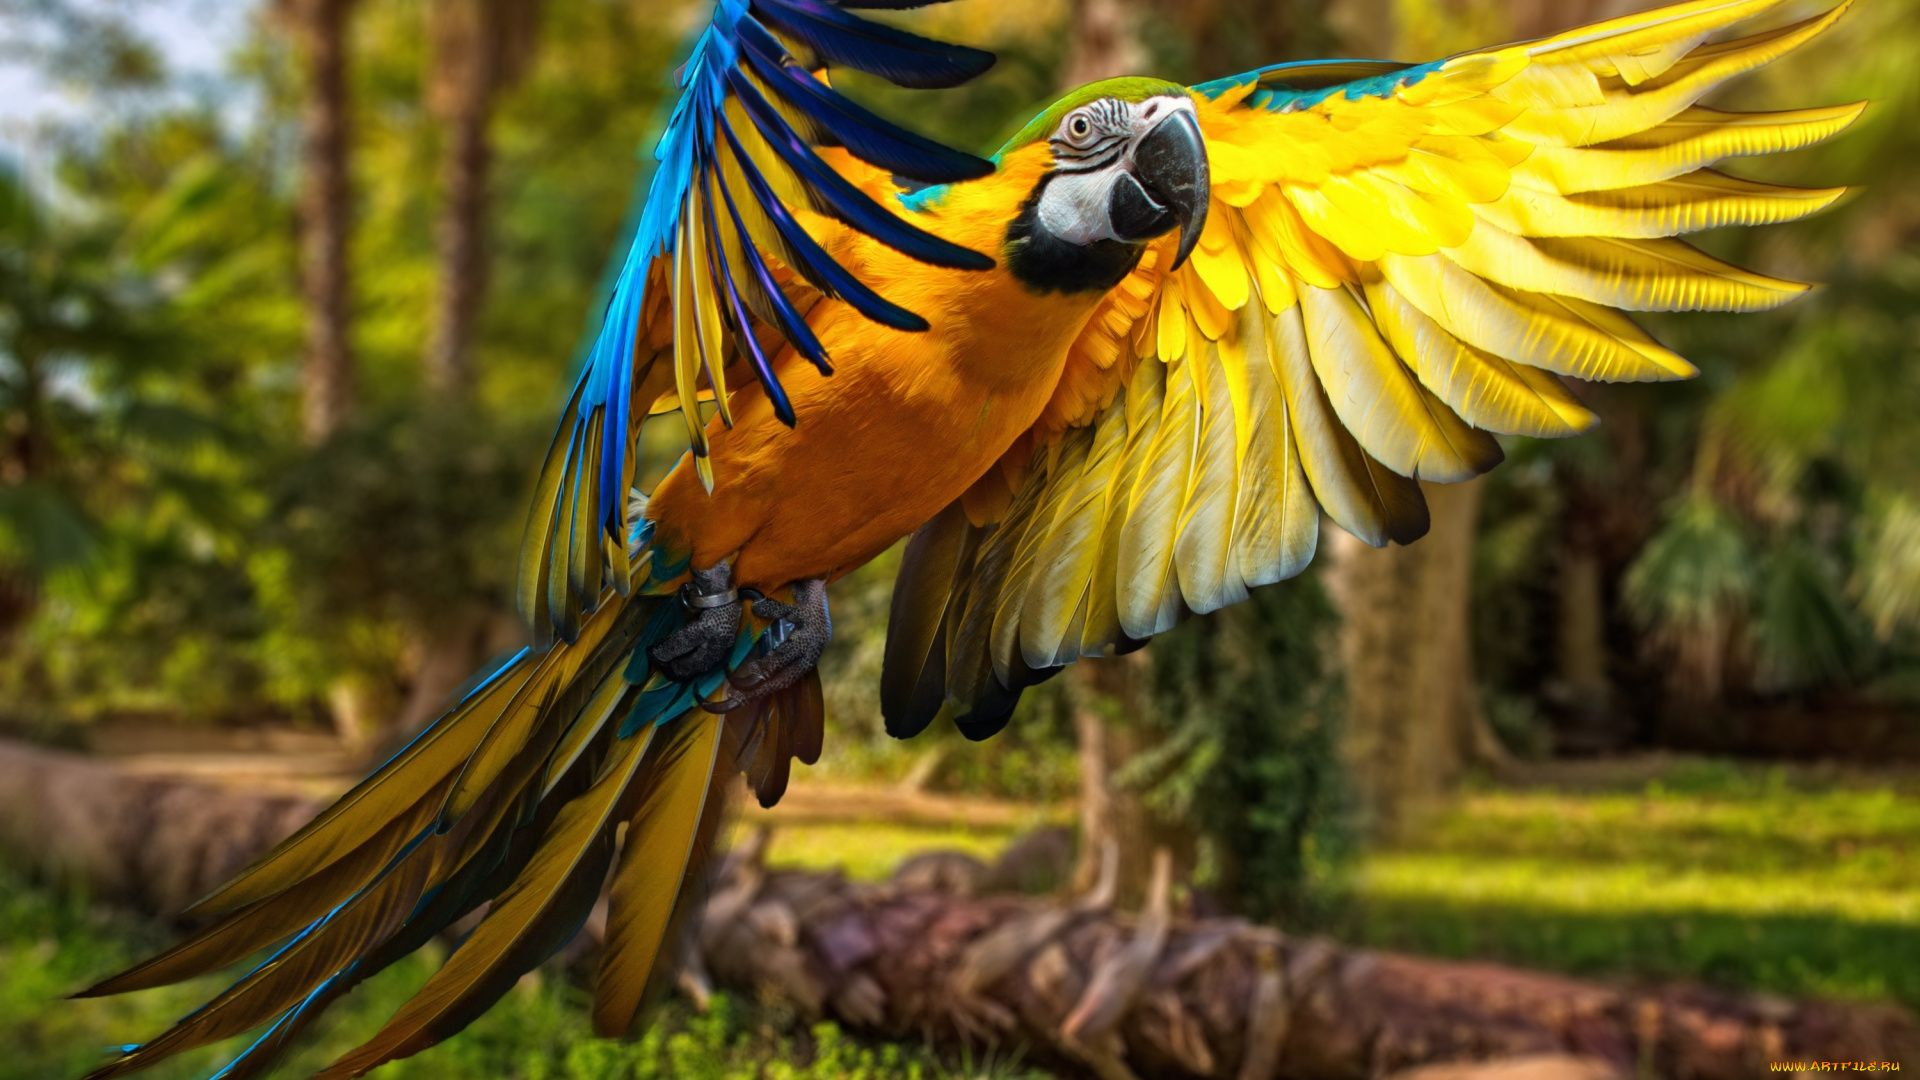 The Most Beautiful Parrots In The World 4k Photo